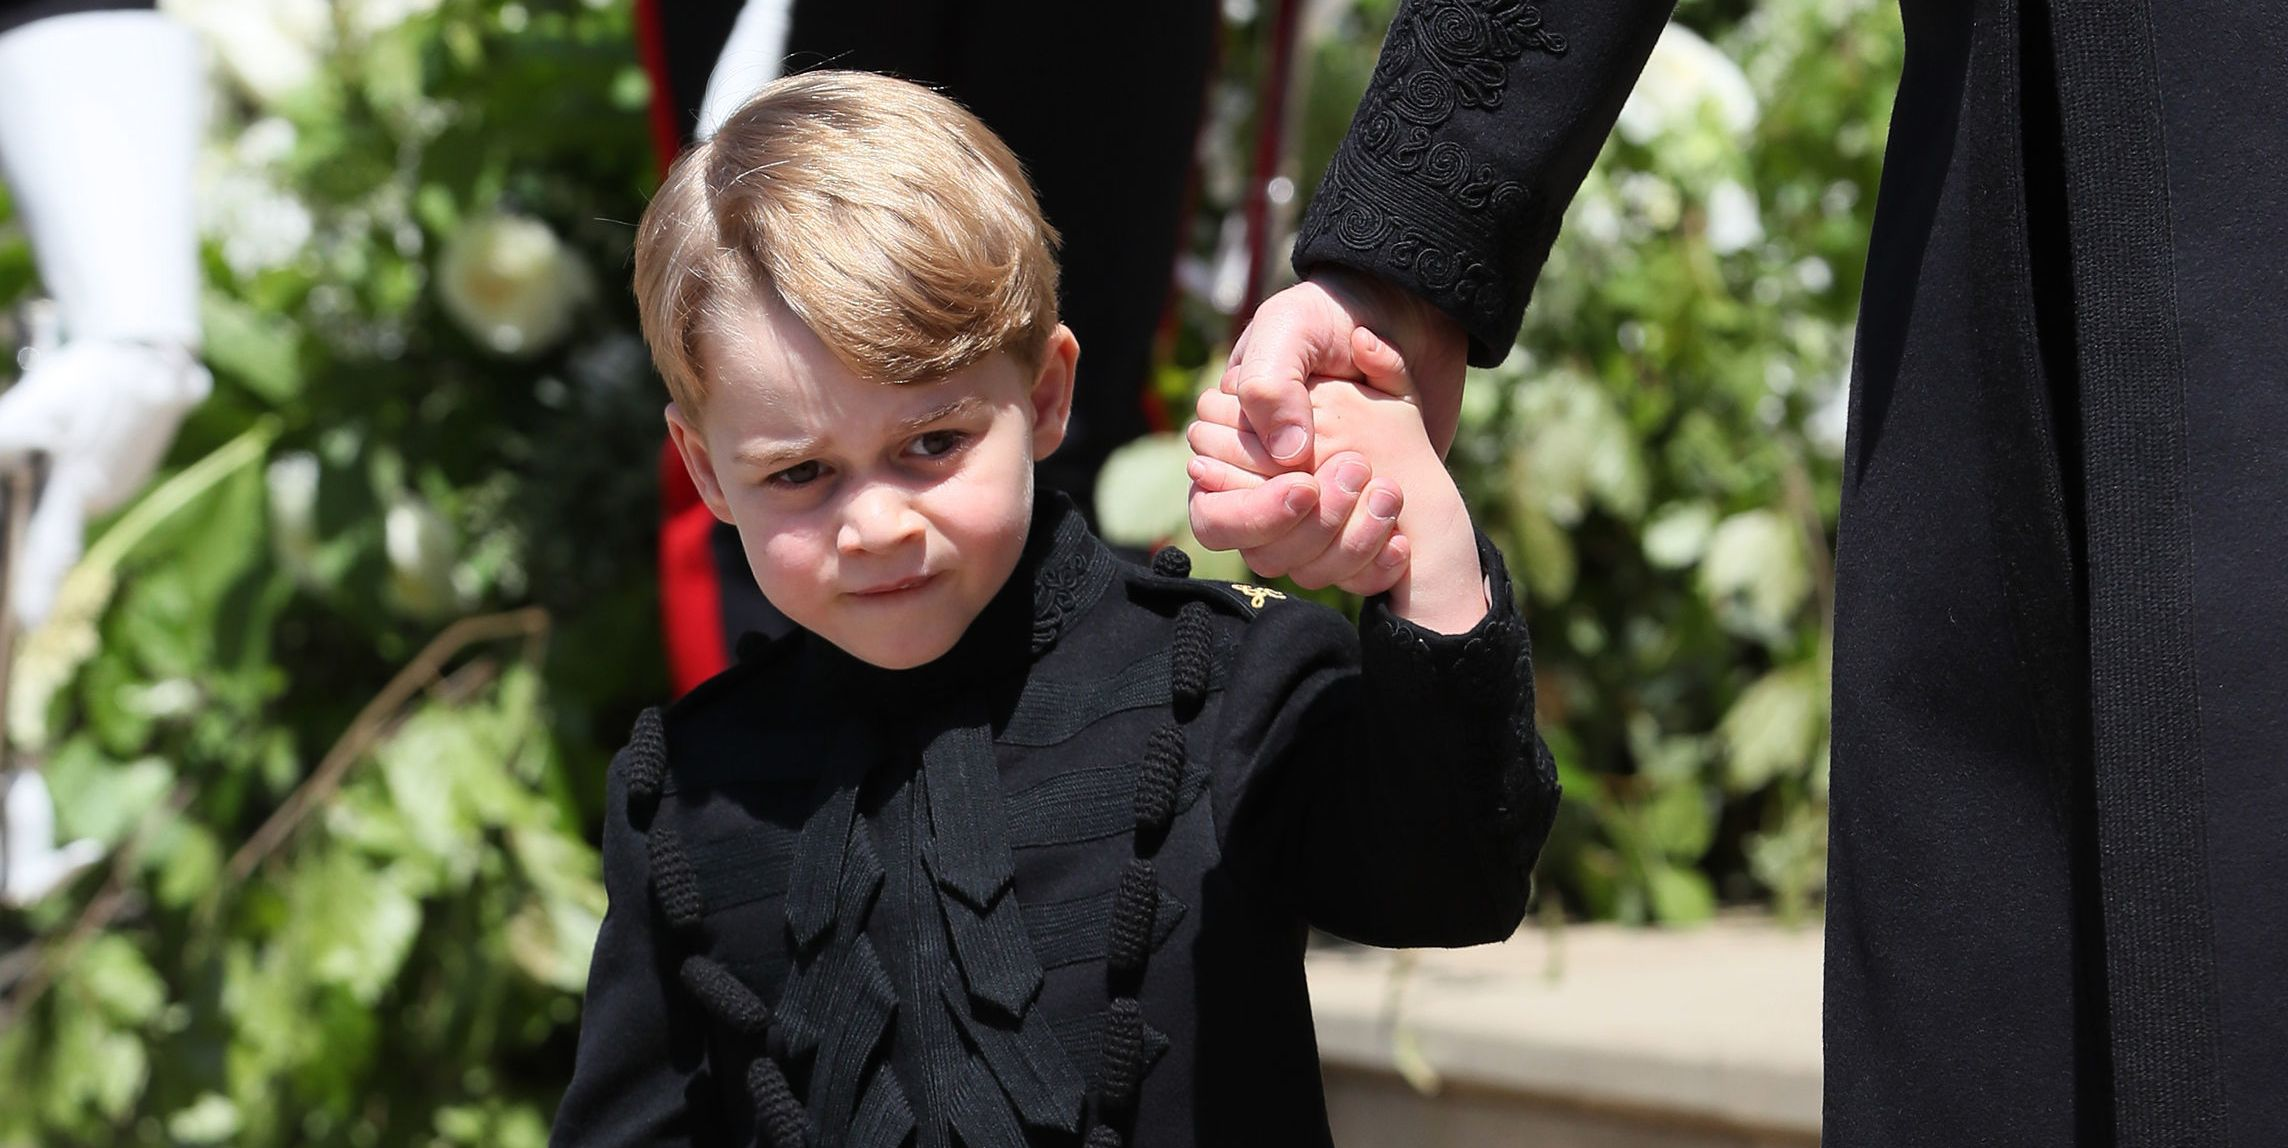 An Accused ISIS Supporter Allegedly Encouraged Followers To Attack Prince George